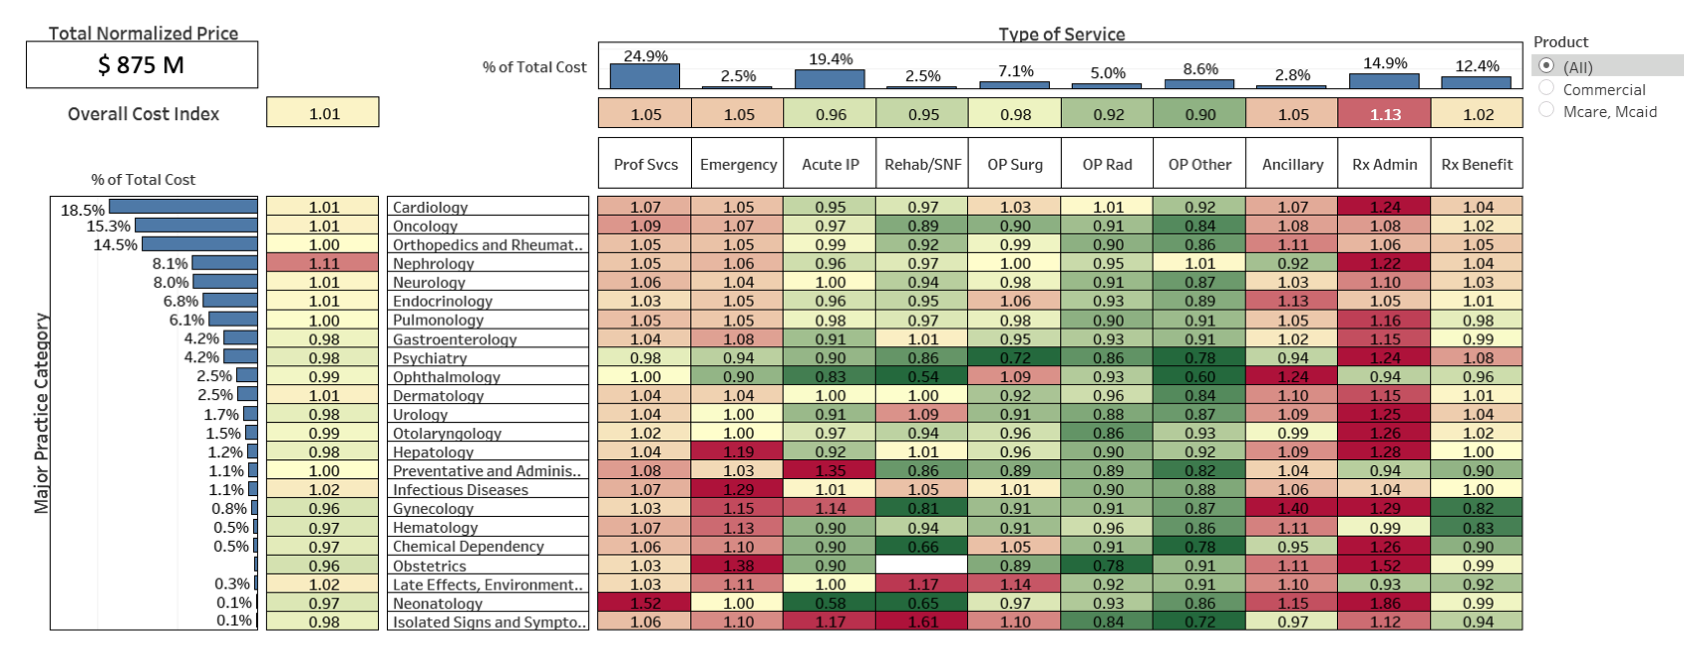 Total Cost Index: Major Practice Category vs. Type of Service